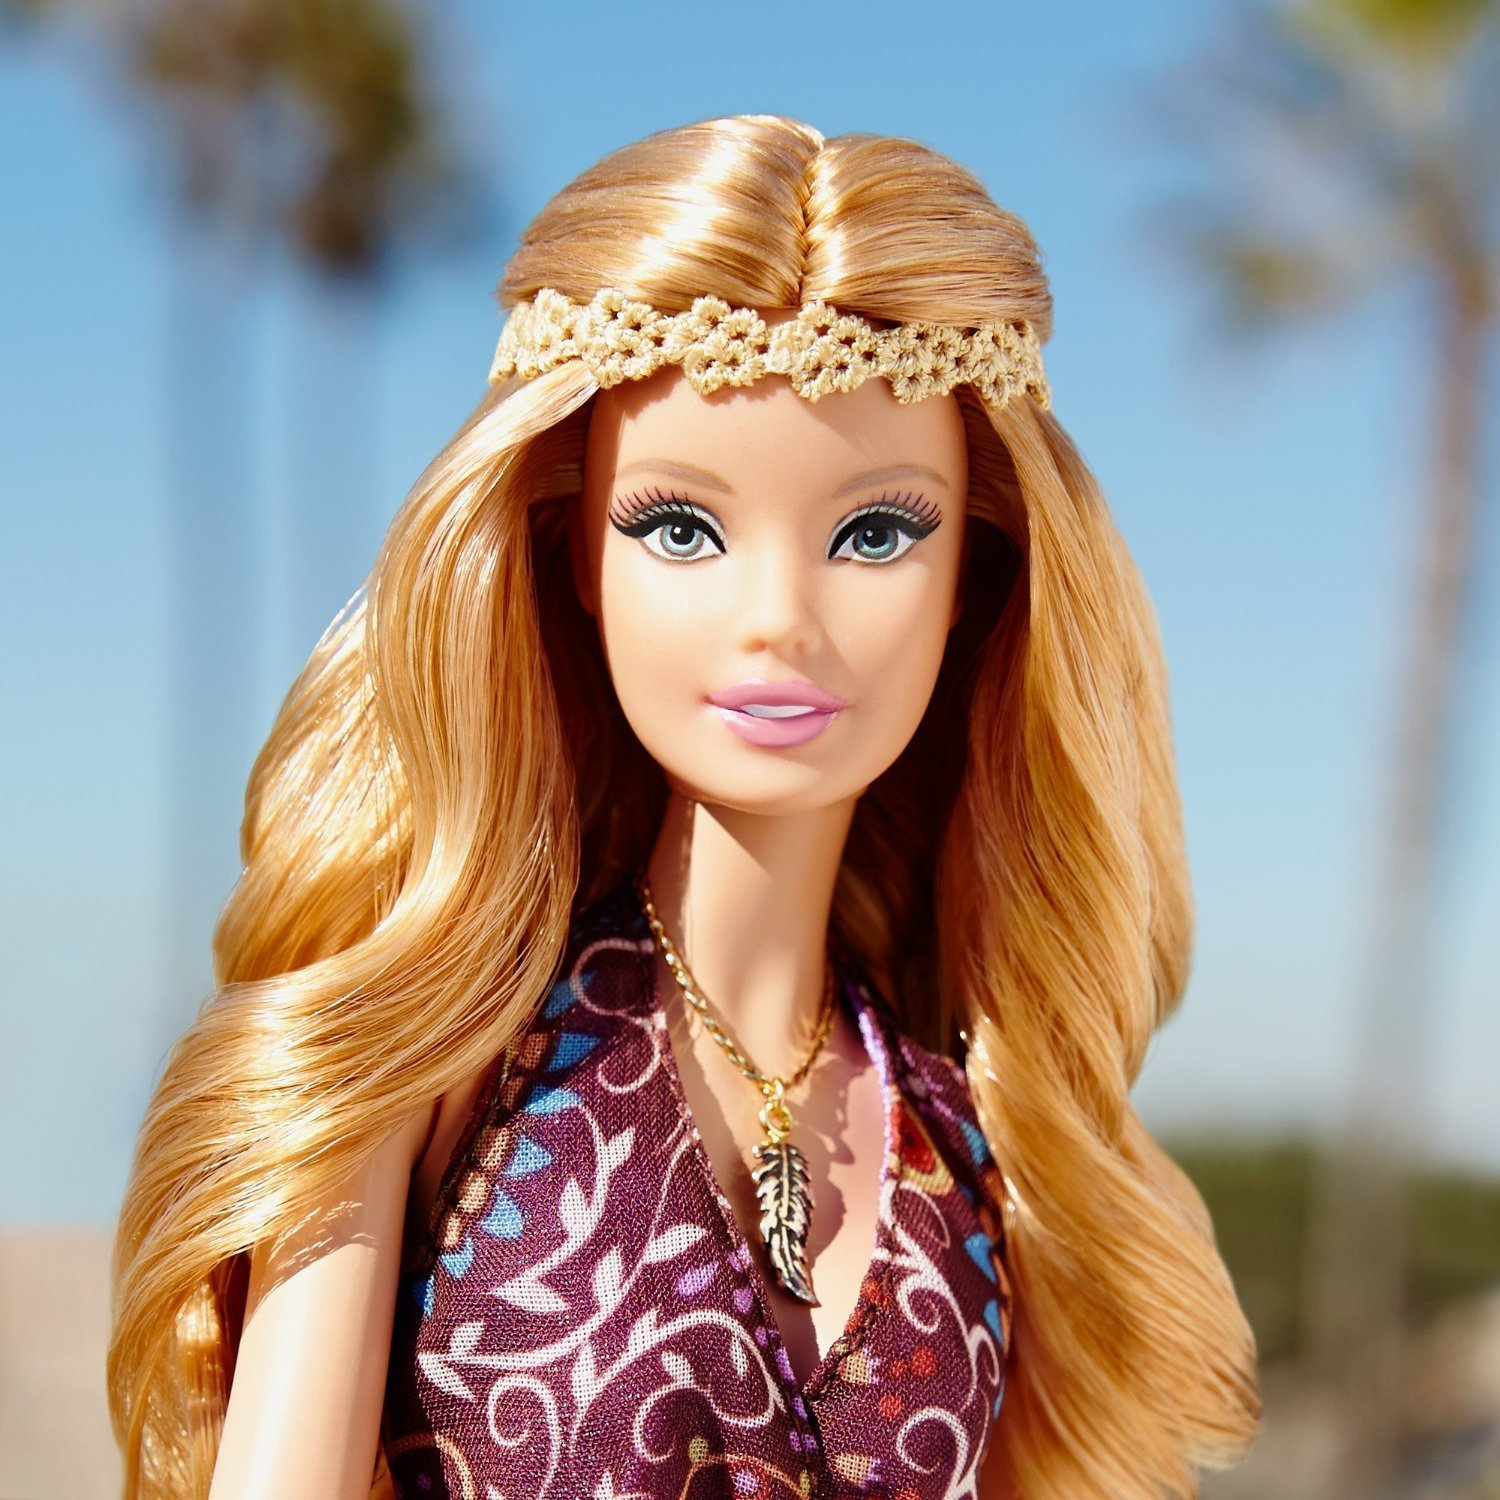 The Barbie Look Music Festival Barbie Doll Toy At